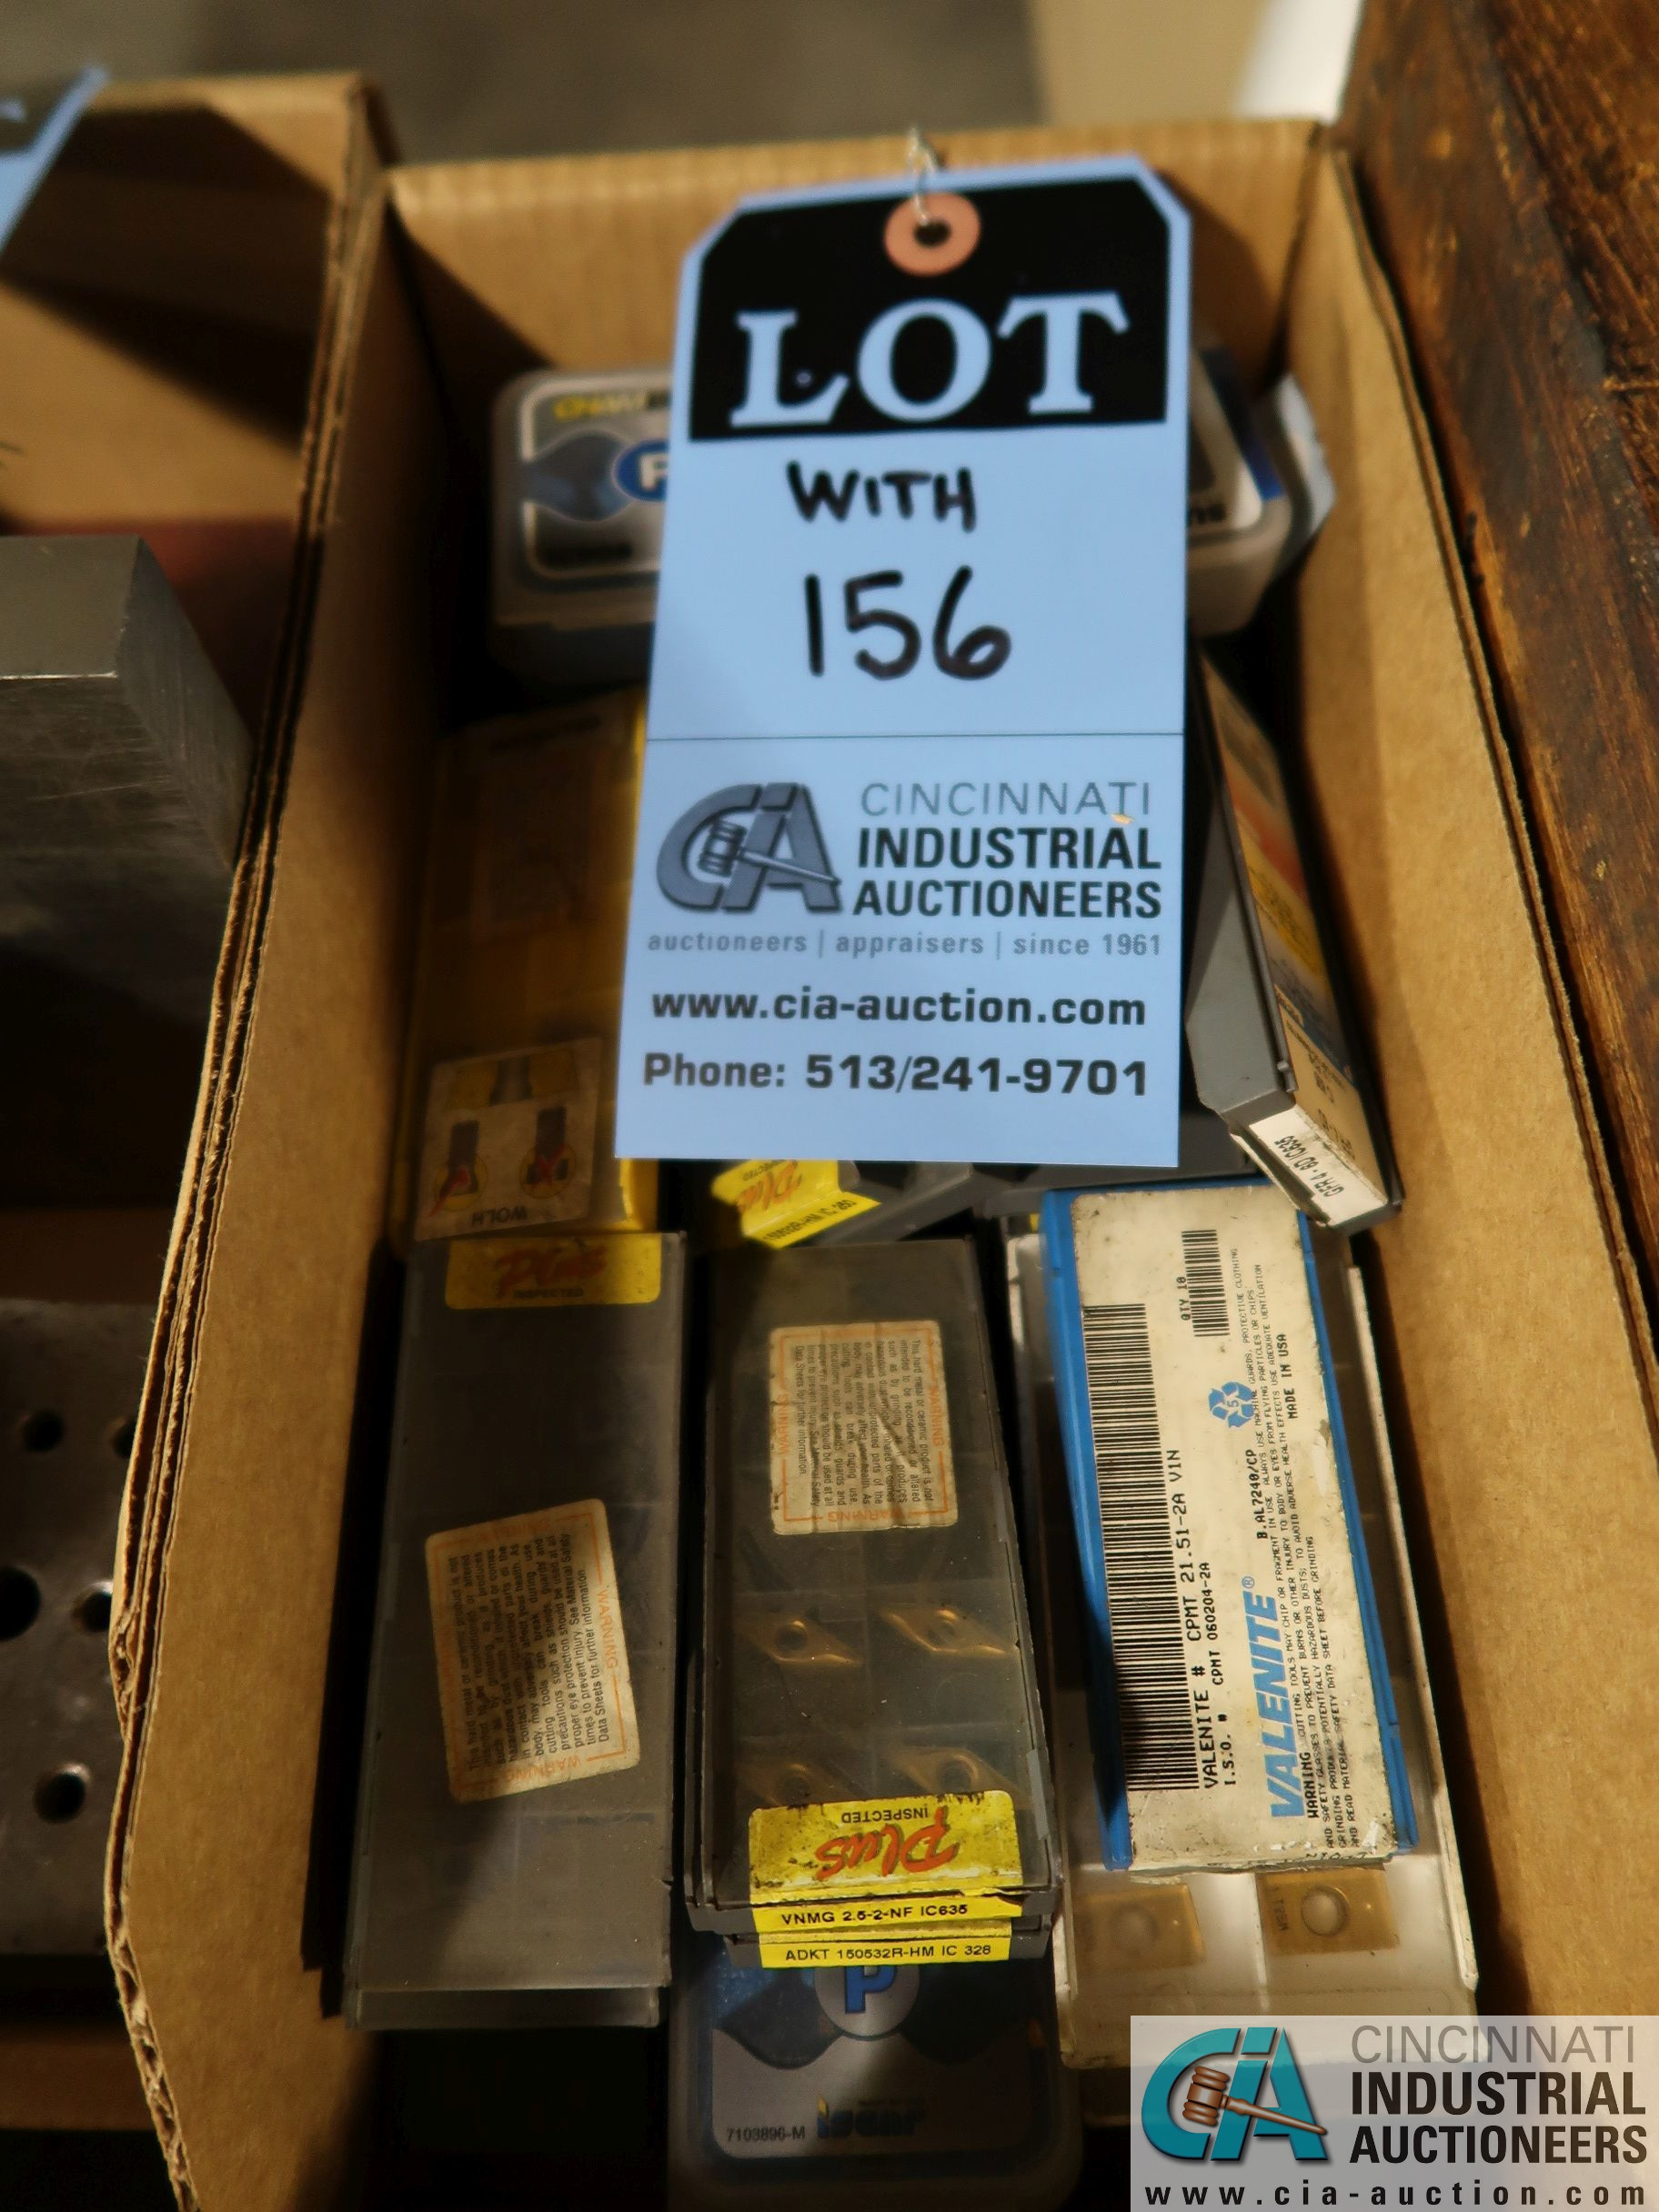 (LOT) CARBIDE INSERTS - Image 2 of 2